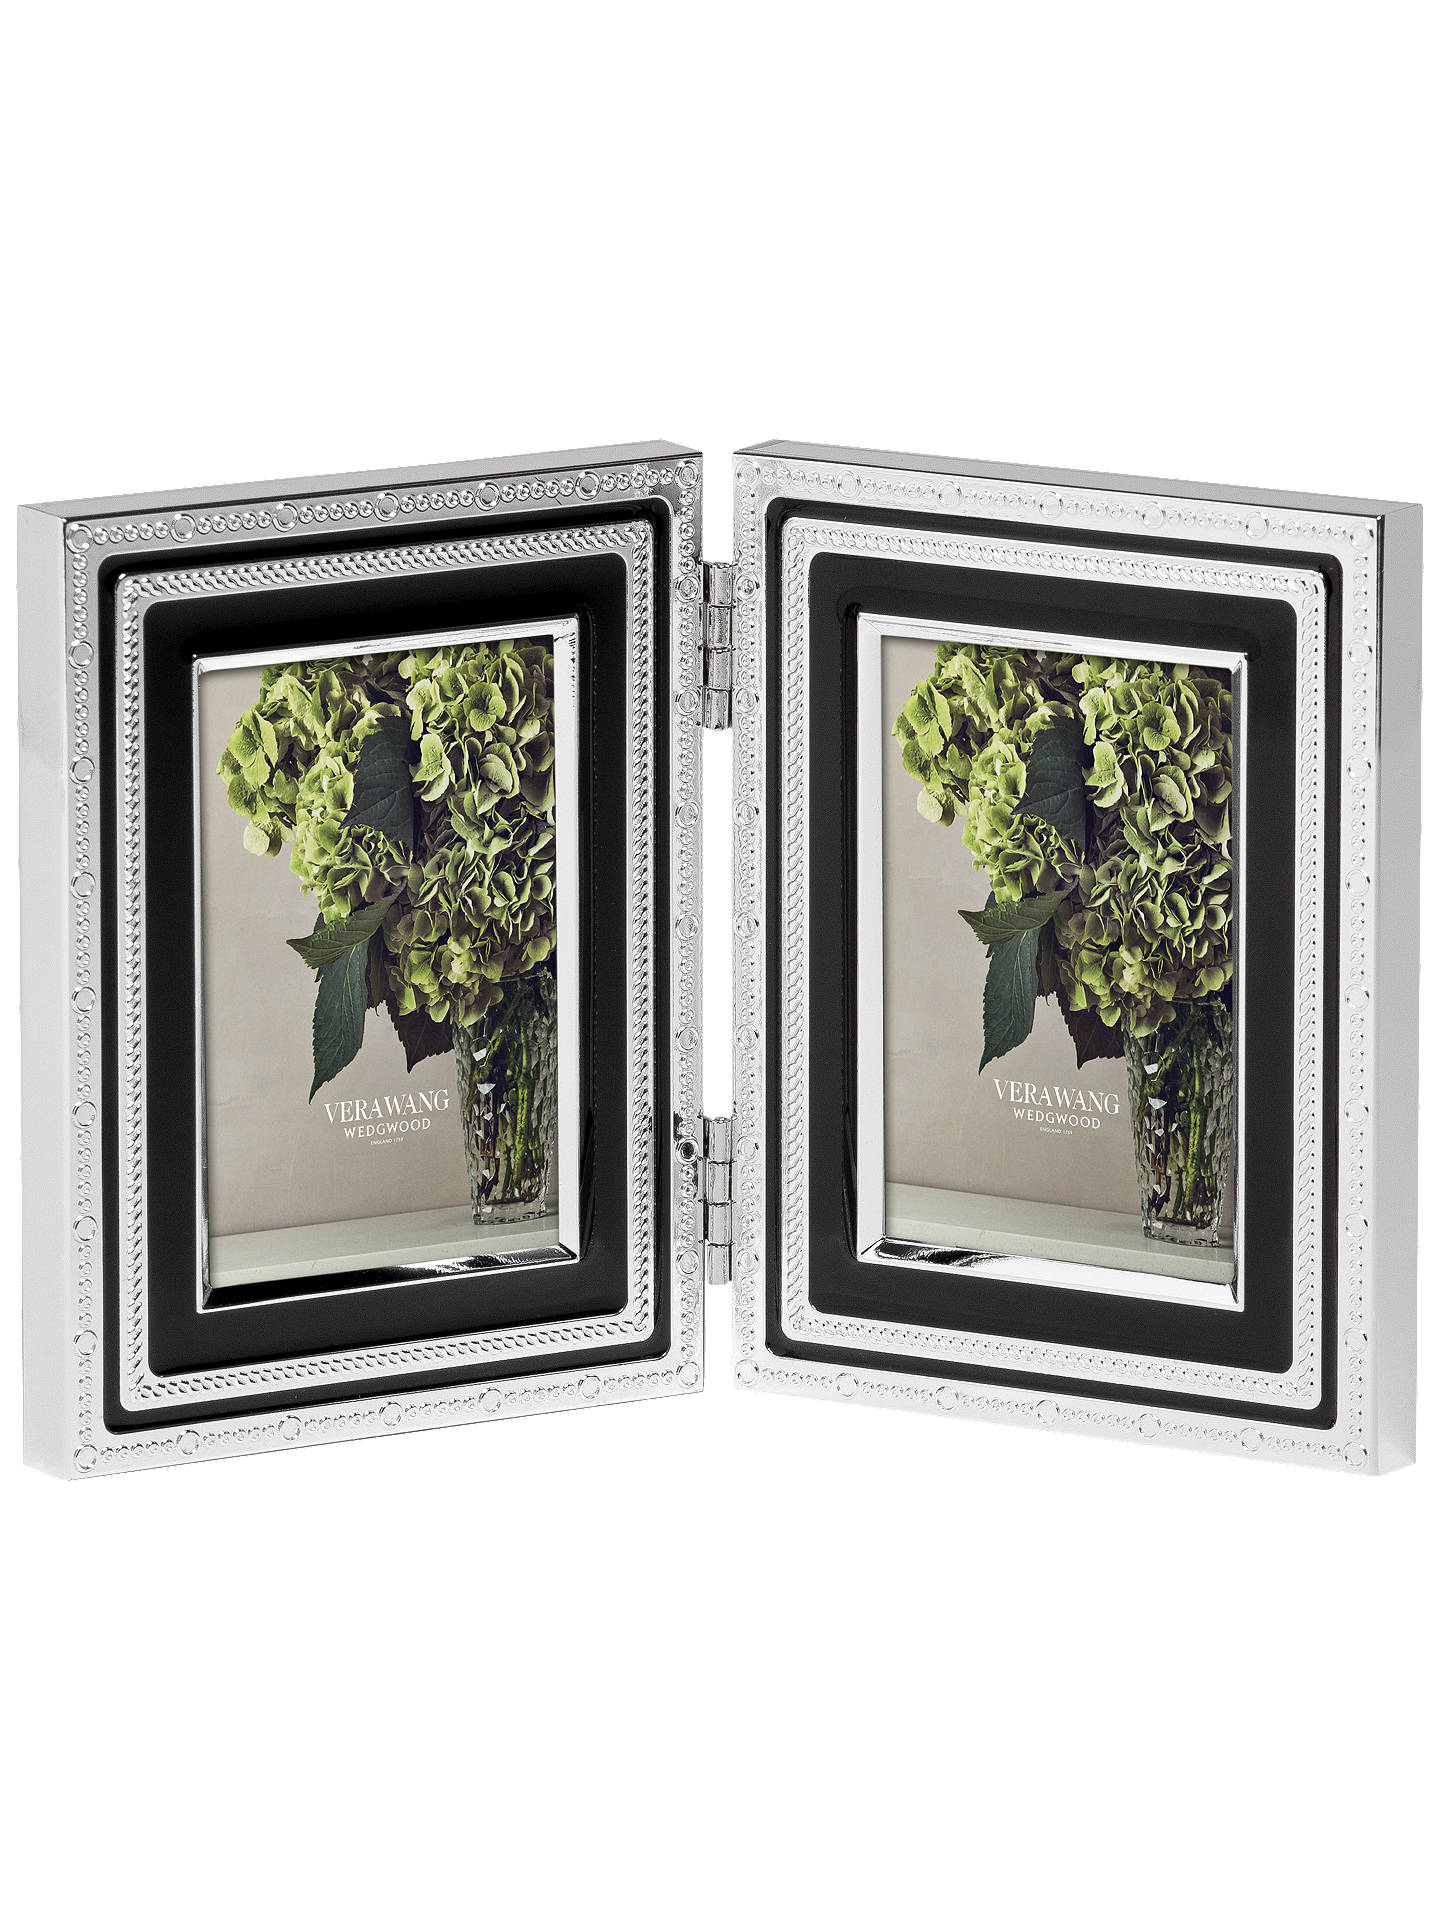 Vera Wang For Wedgwood With Love Double Photo Frame Noir 2 X 3 5